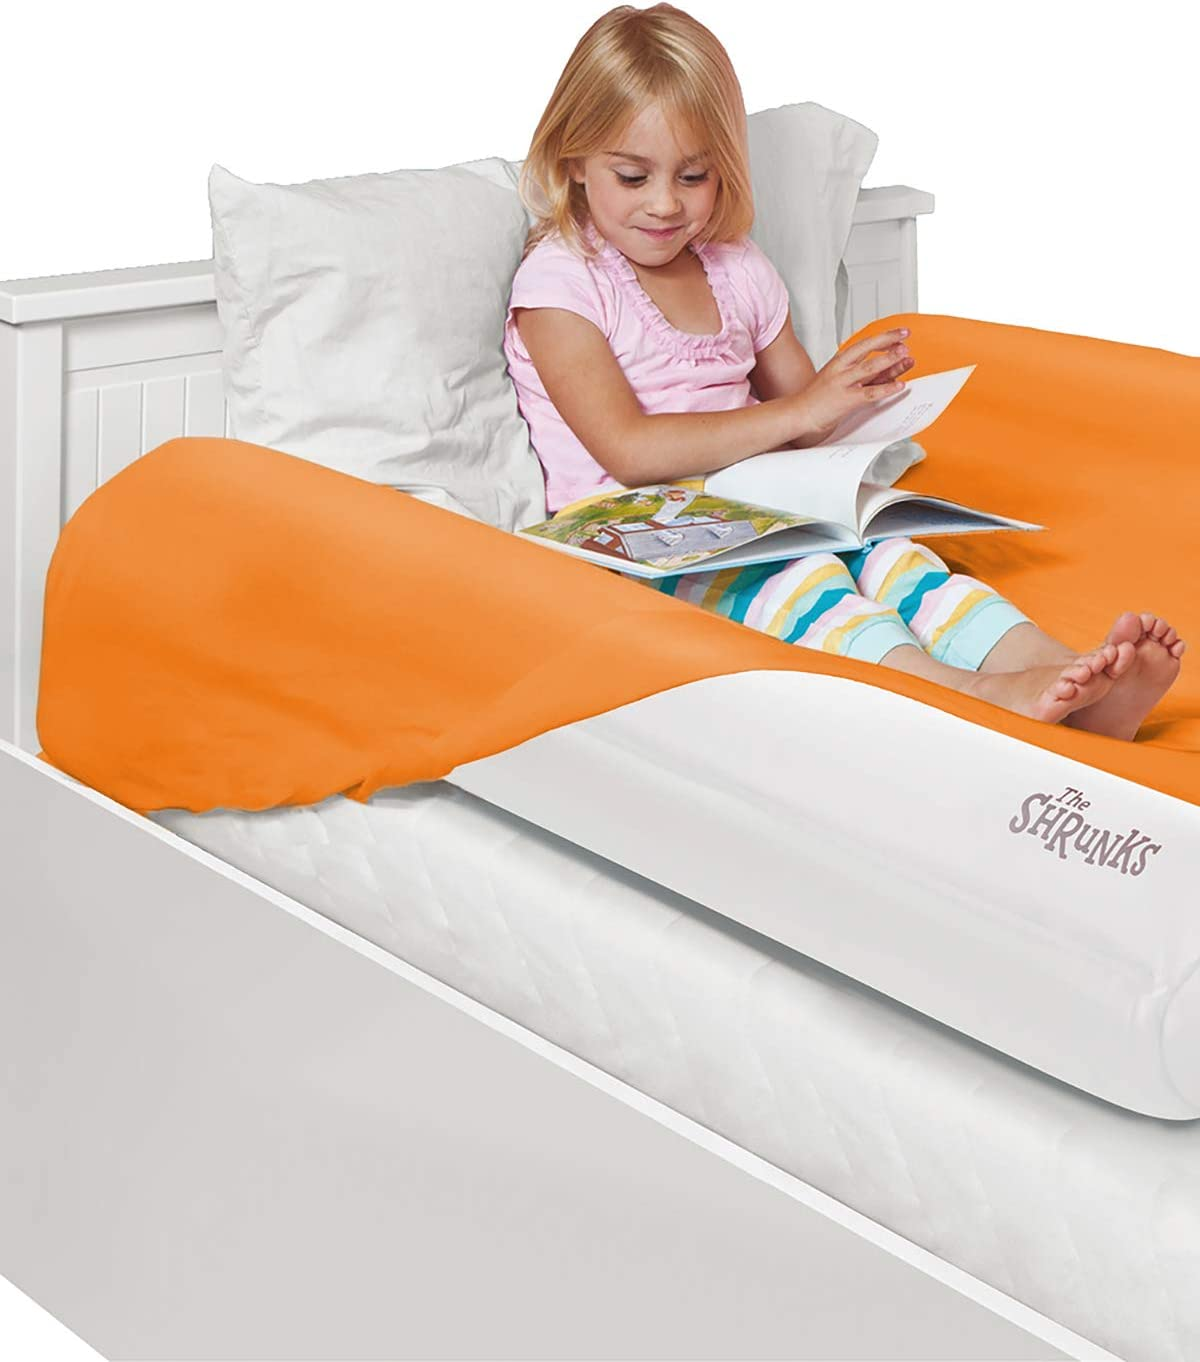 2 Count The Shrunks Wally Inflatable Bed Rail